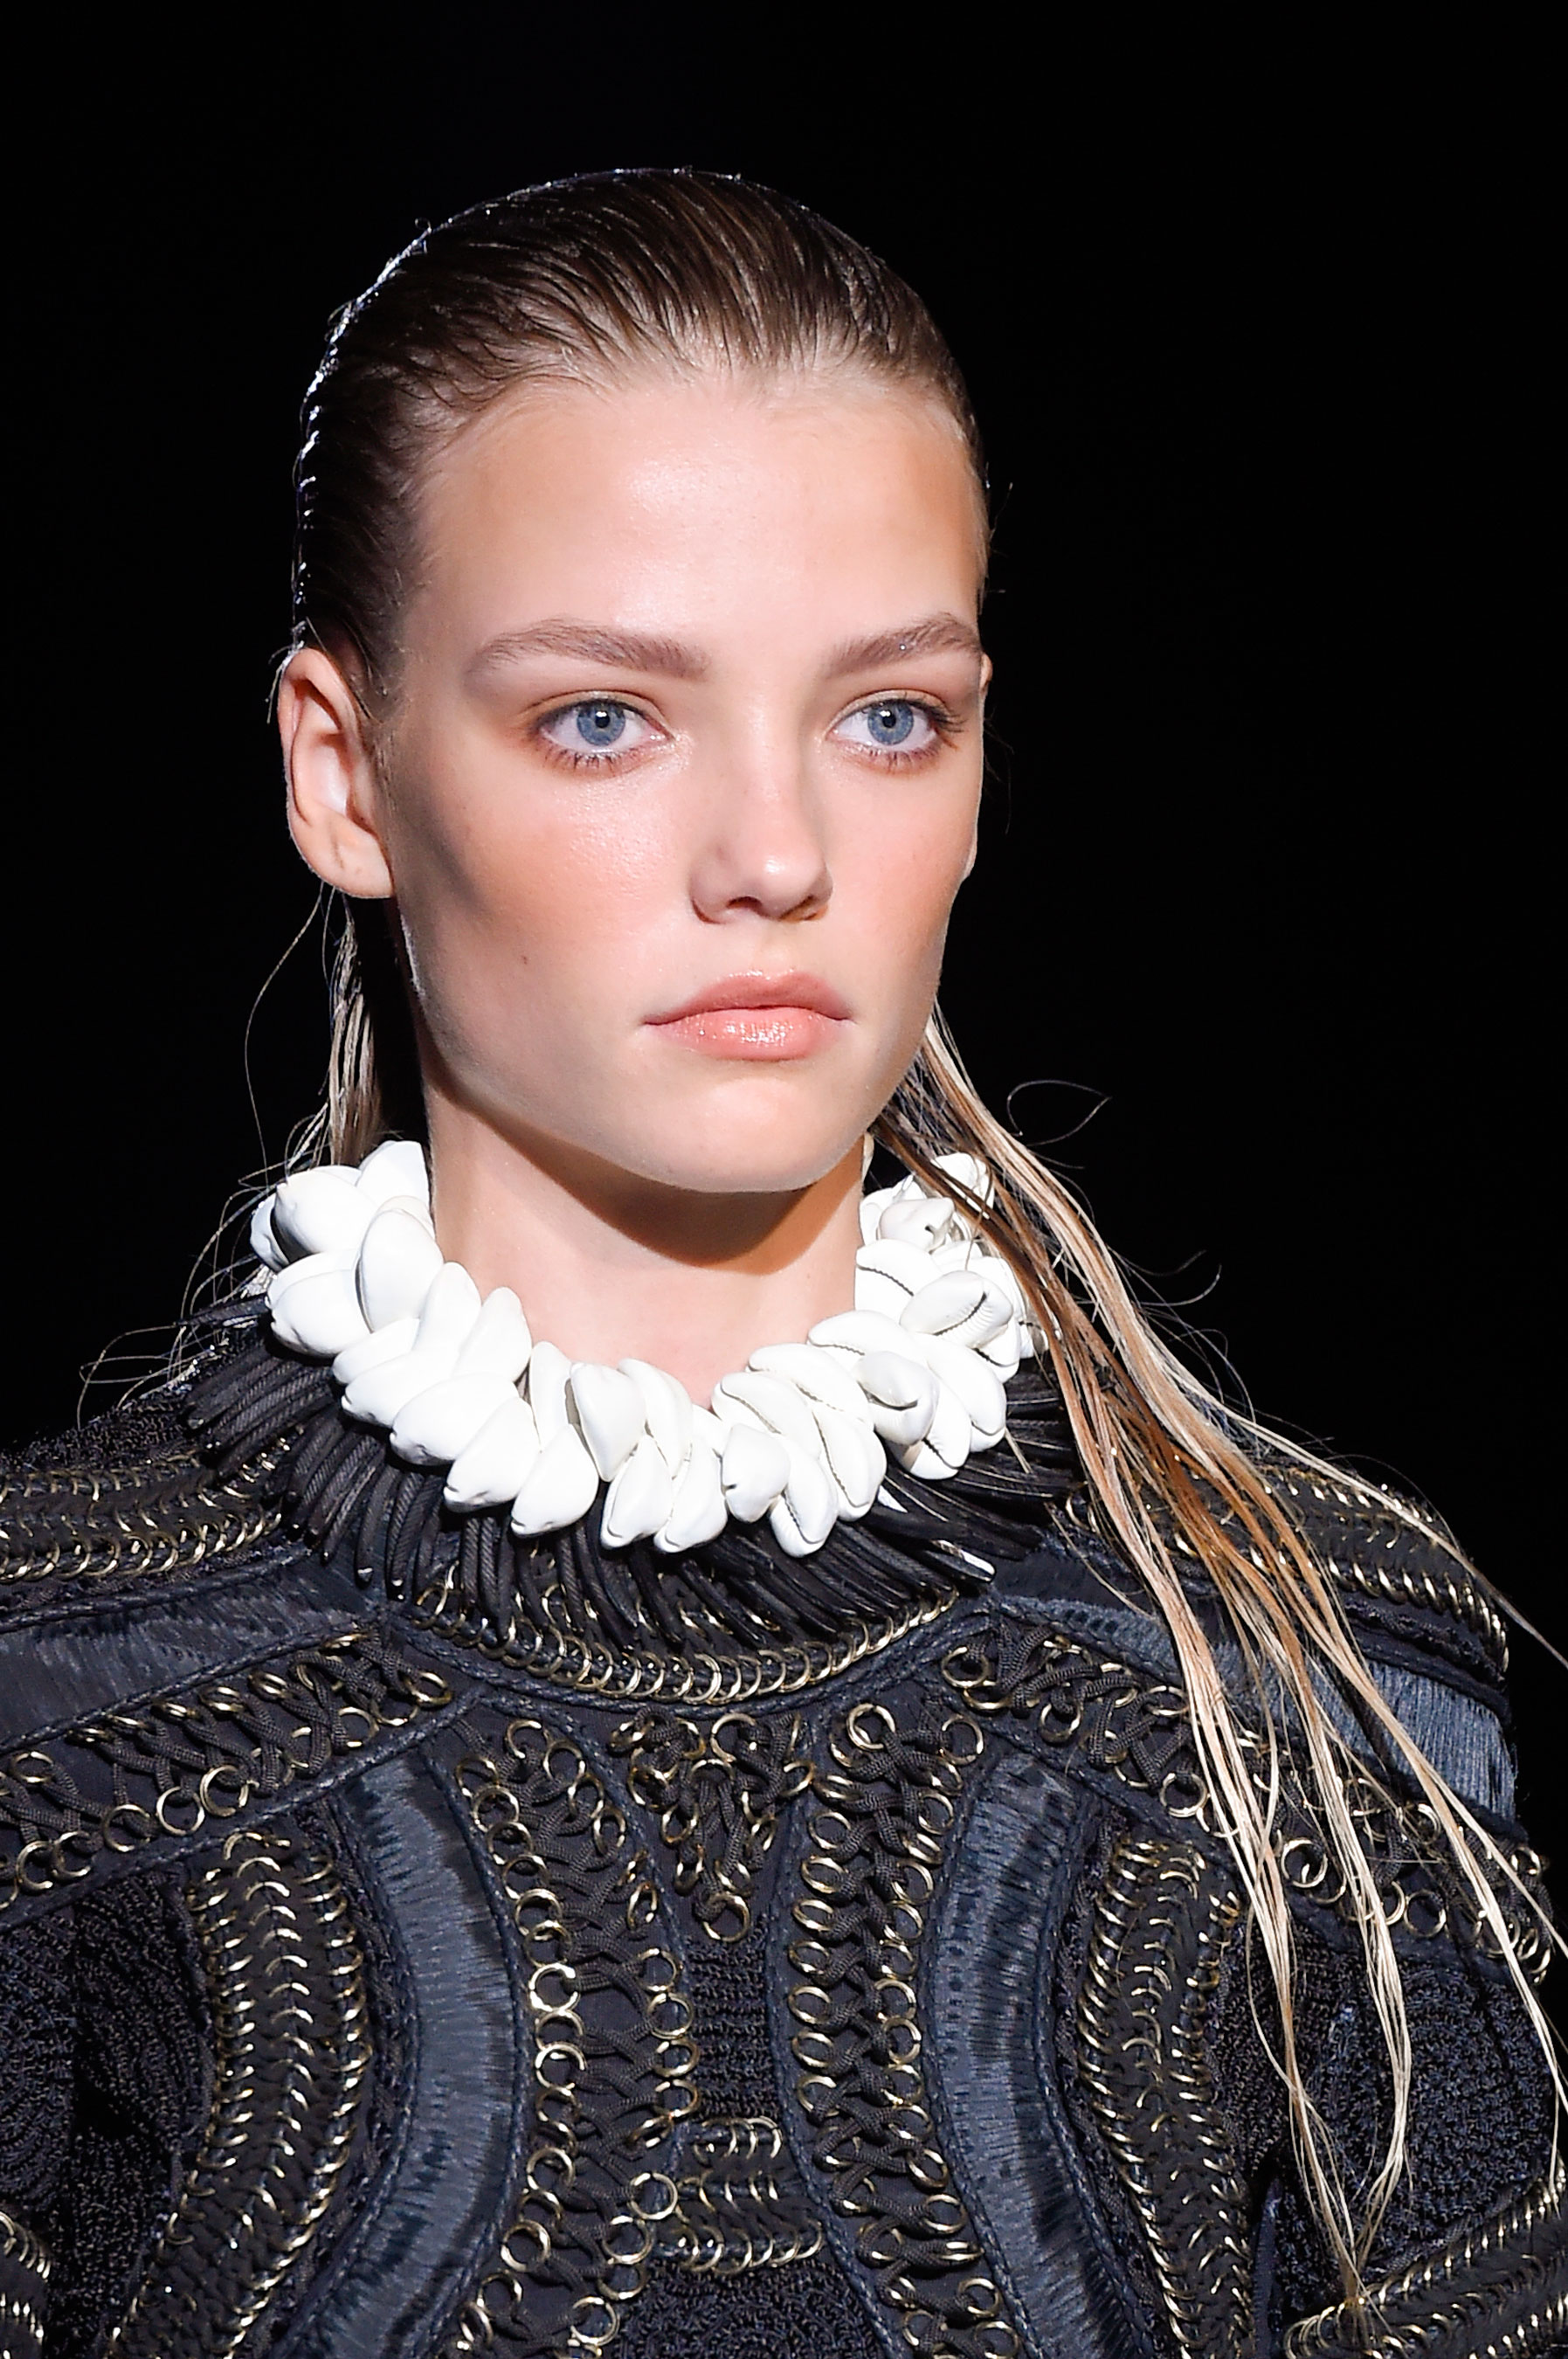 DSquared2-runway-beauty-spring-2016-fashion-show-the-impression-031